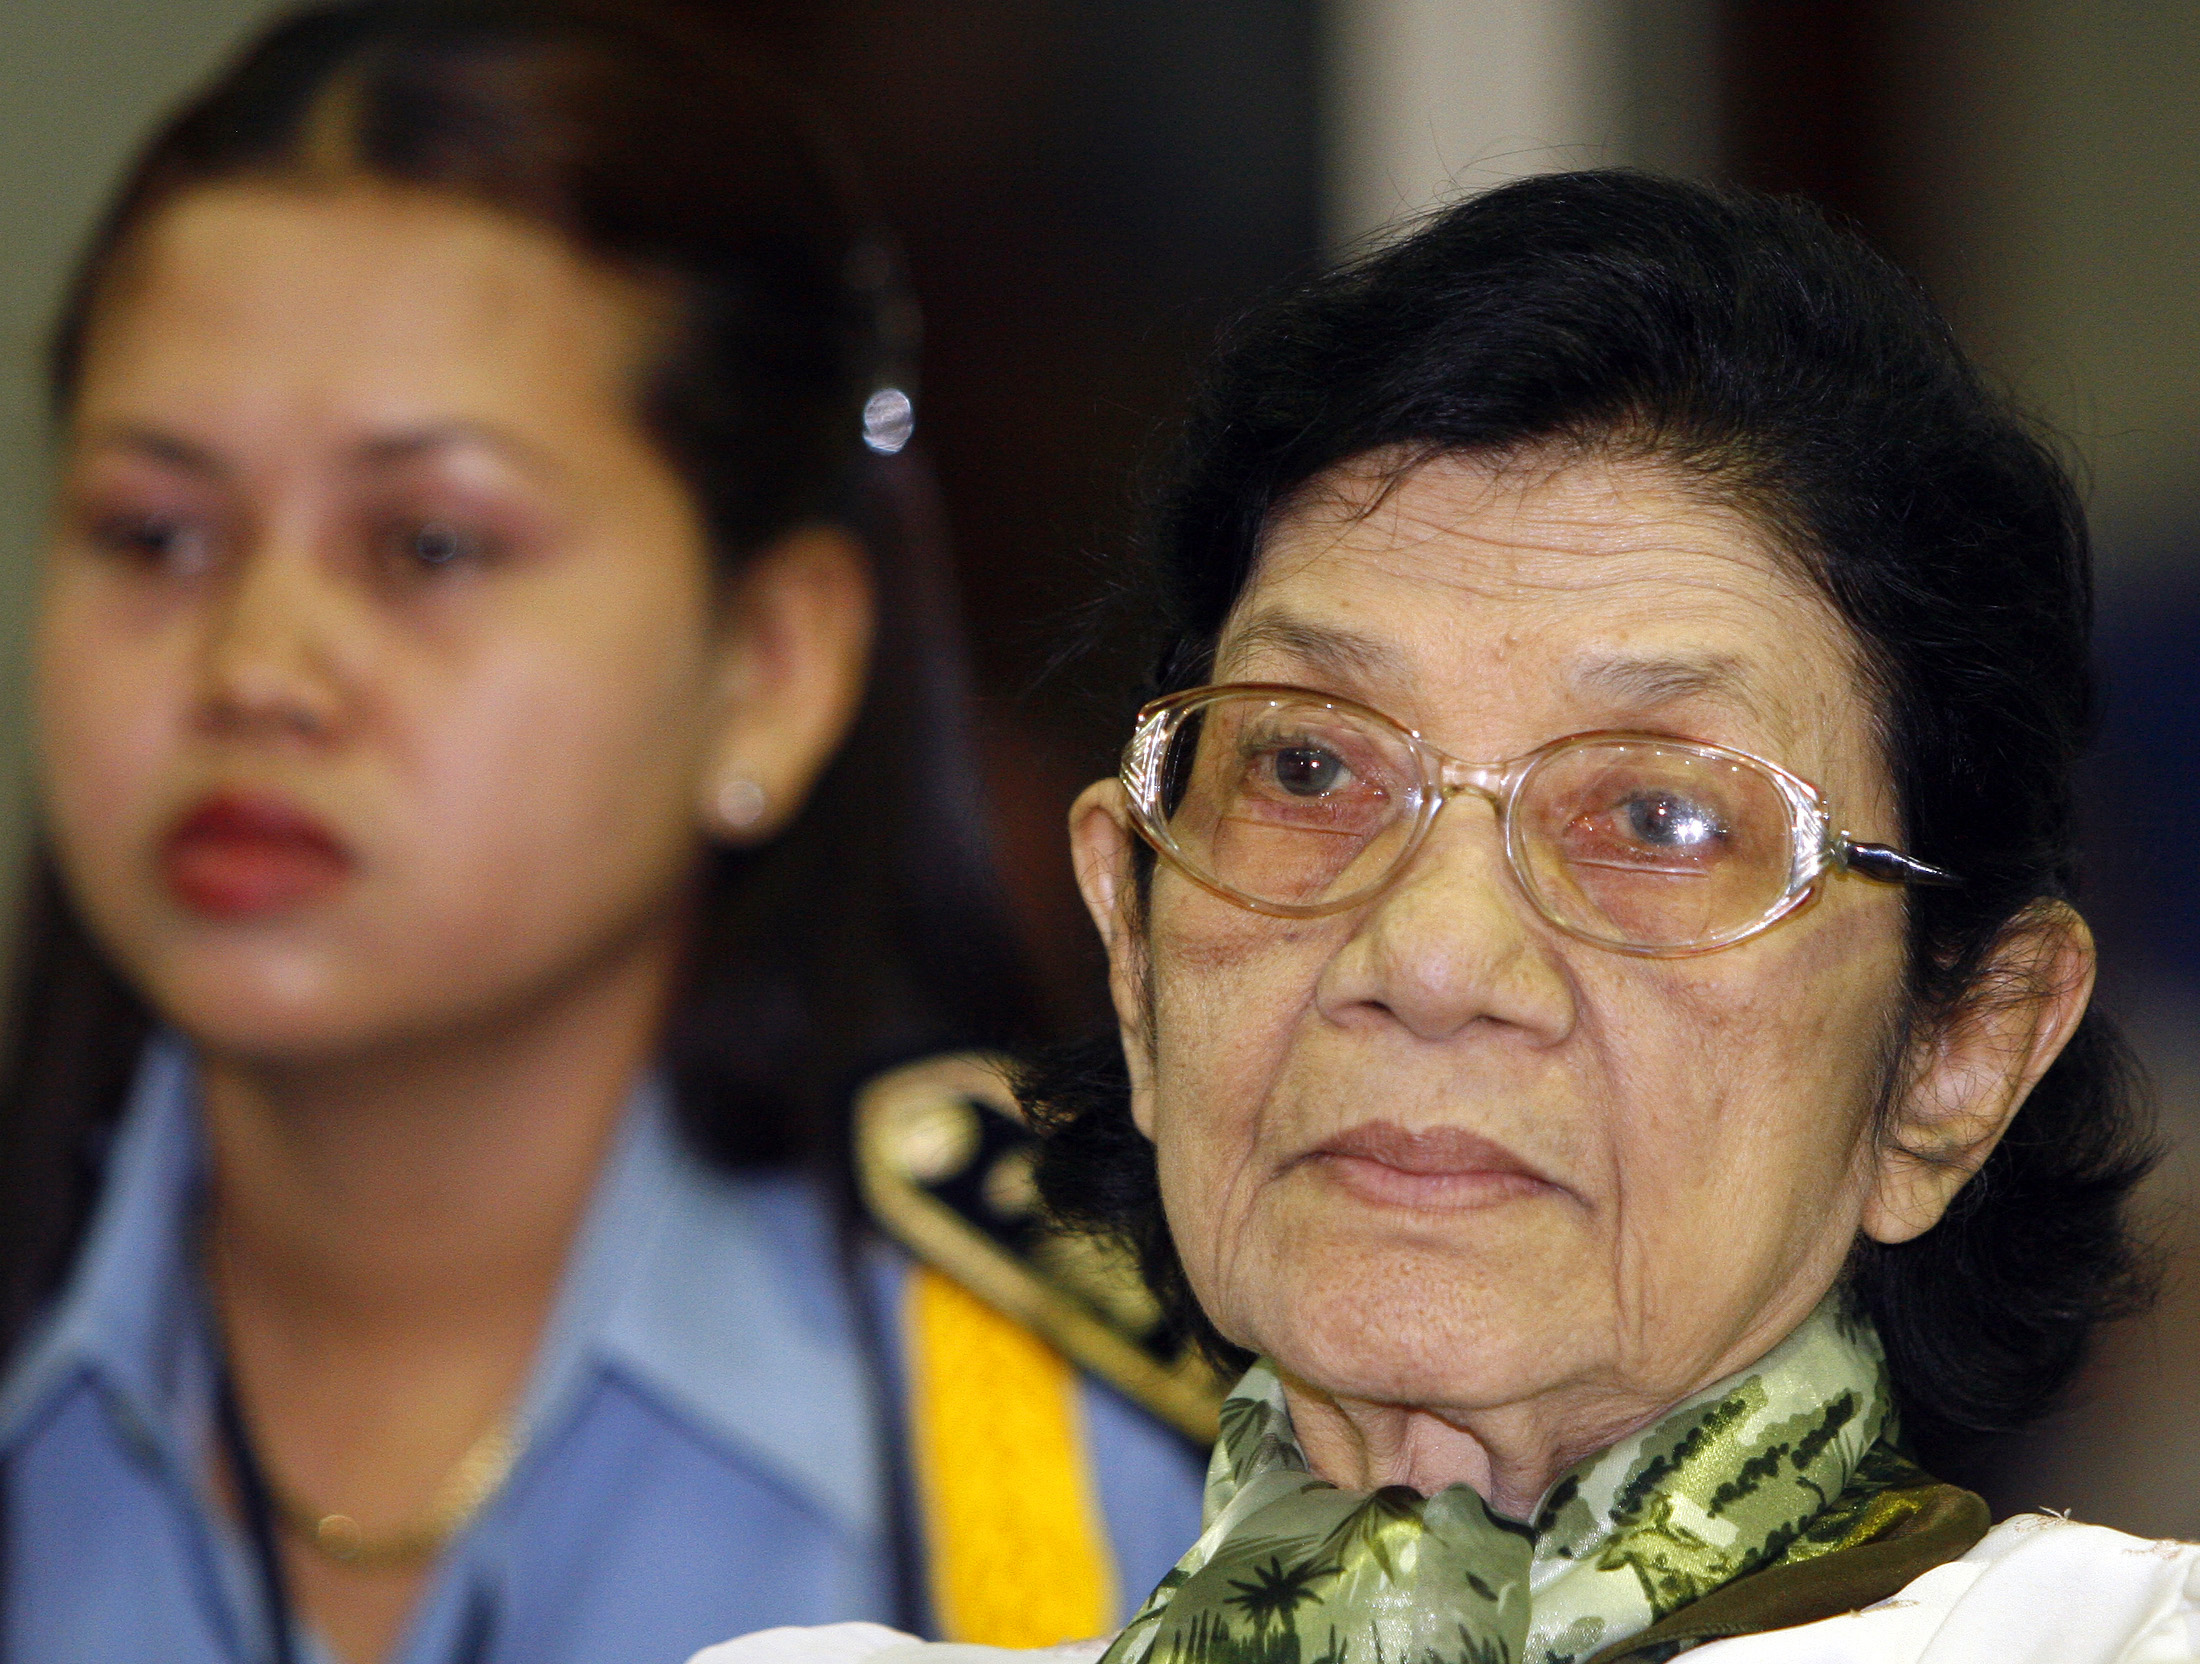 Ieng Thirith, Social Affairs Minister under the Khmer Rouge regime, sits in the dock during her pretrial chamber public hearing at Extraordinary Chambers in the Courts of Cambodia, on the outskirts of Phnom Penh on Feb. 24, 2009